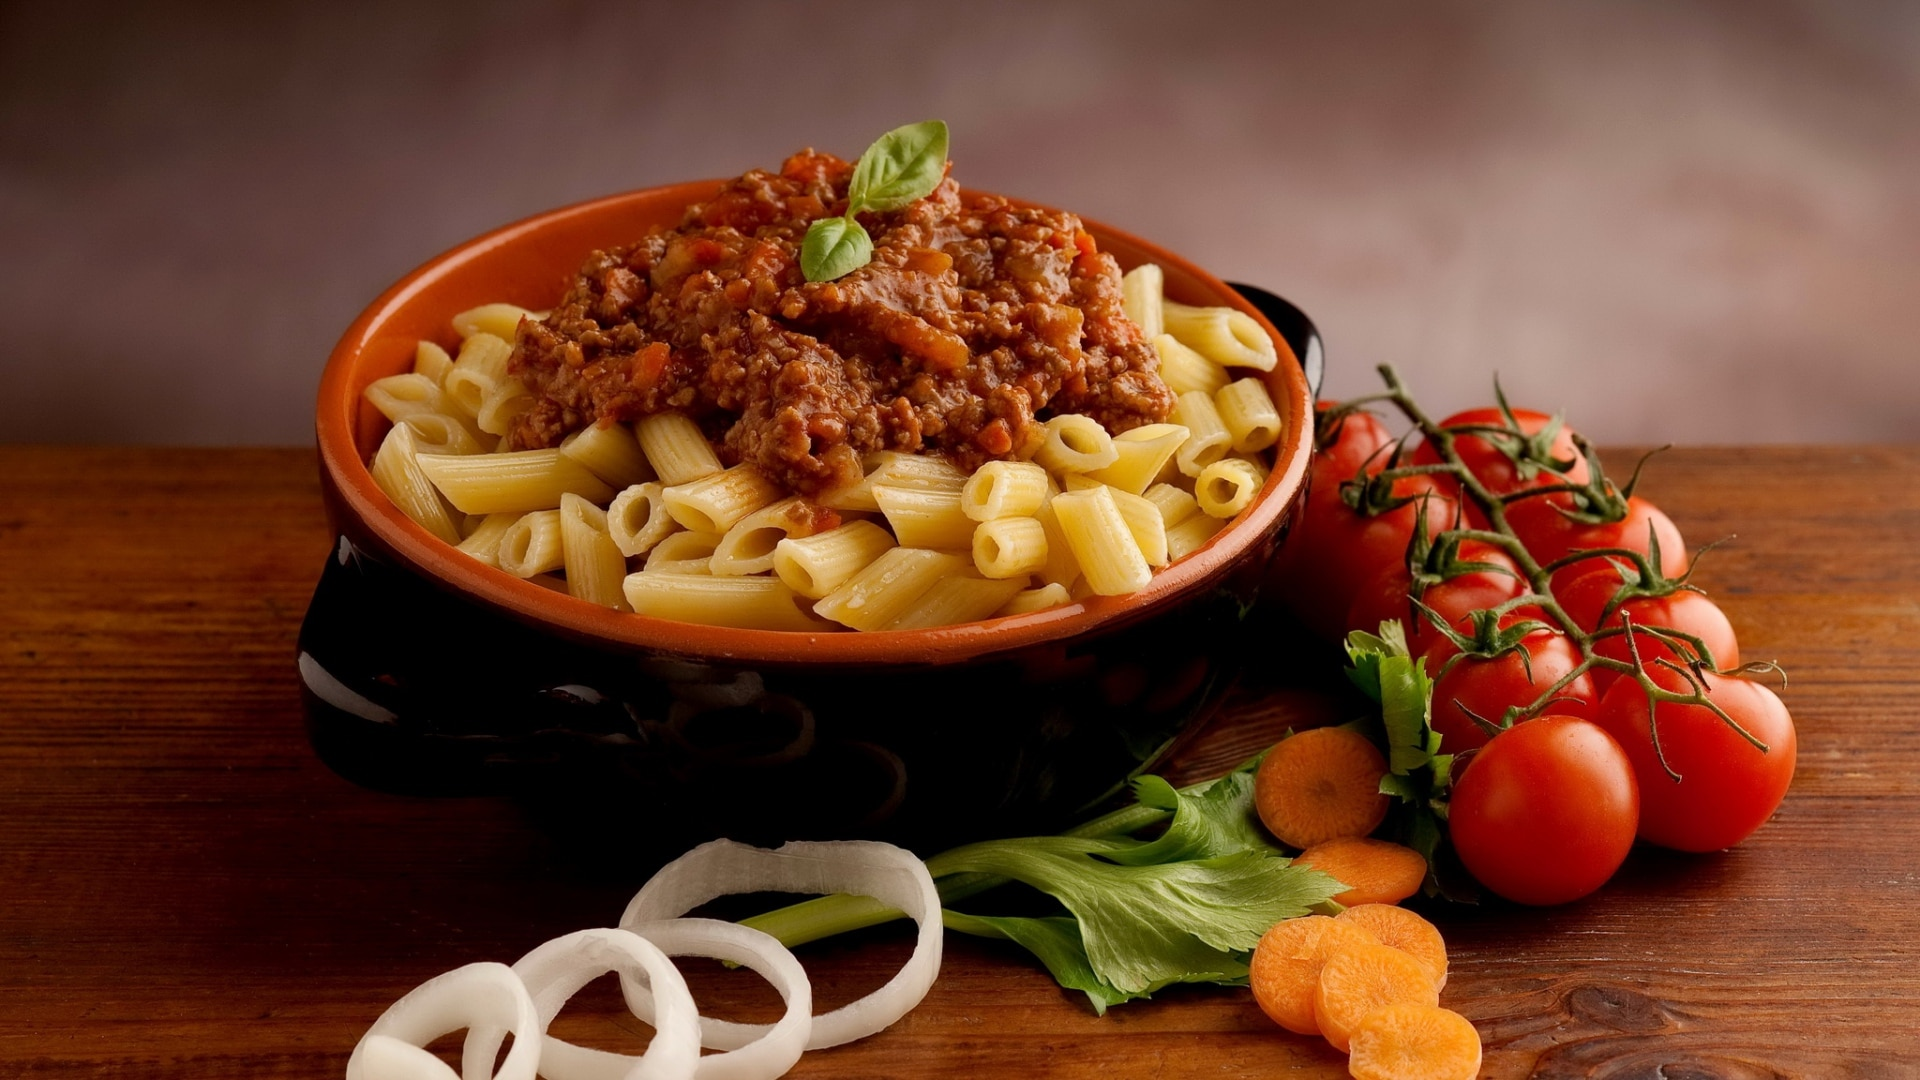 pasta_sauce_meat_vegetables_70961_1920x1080